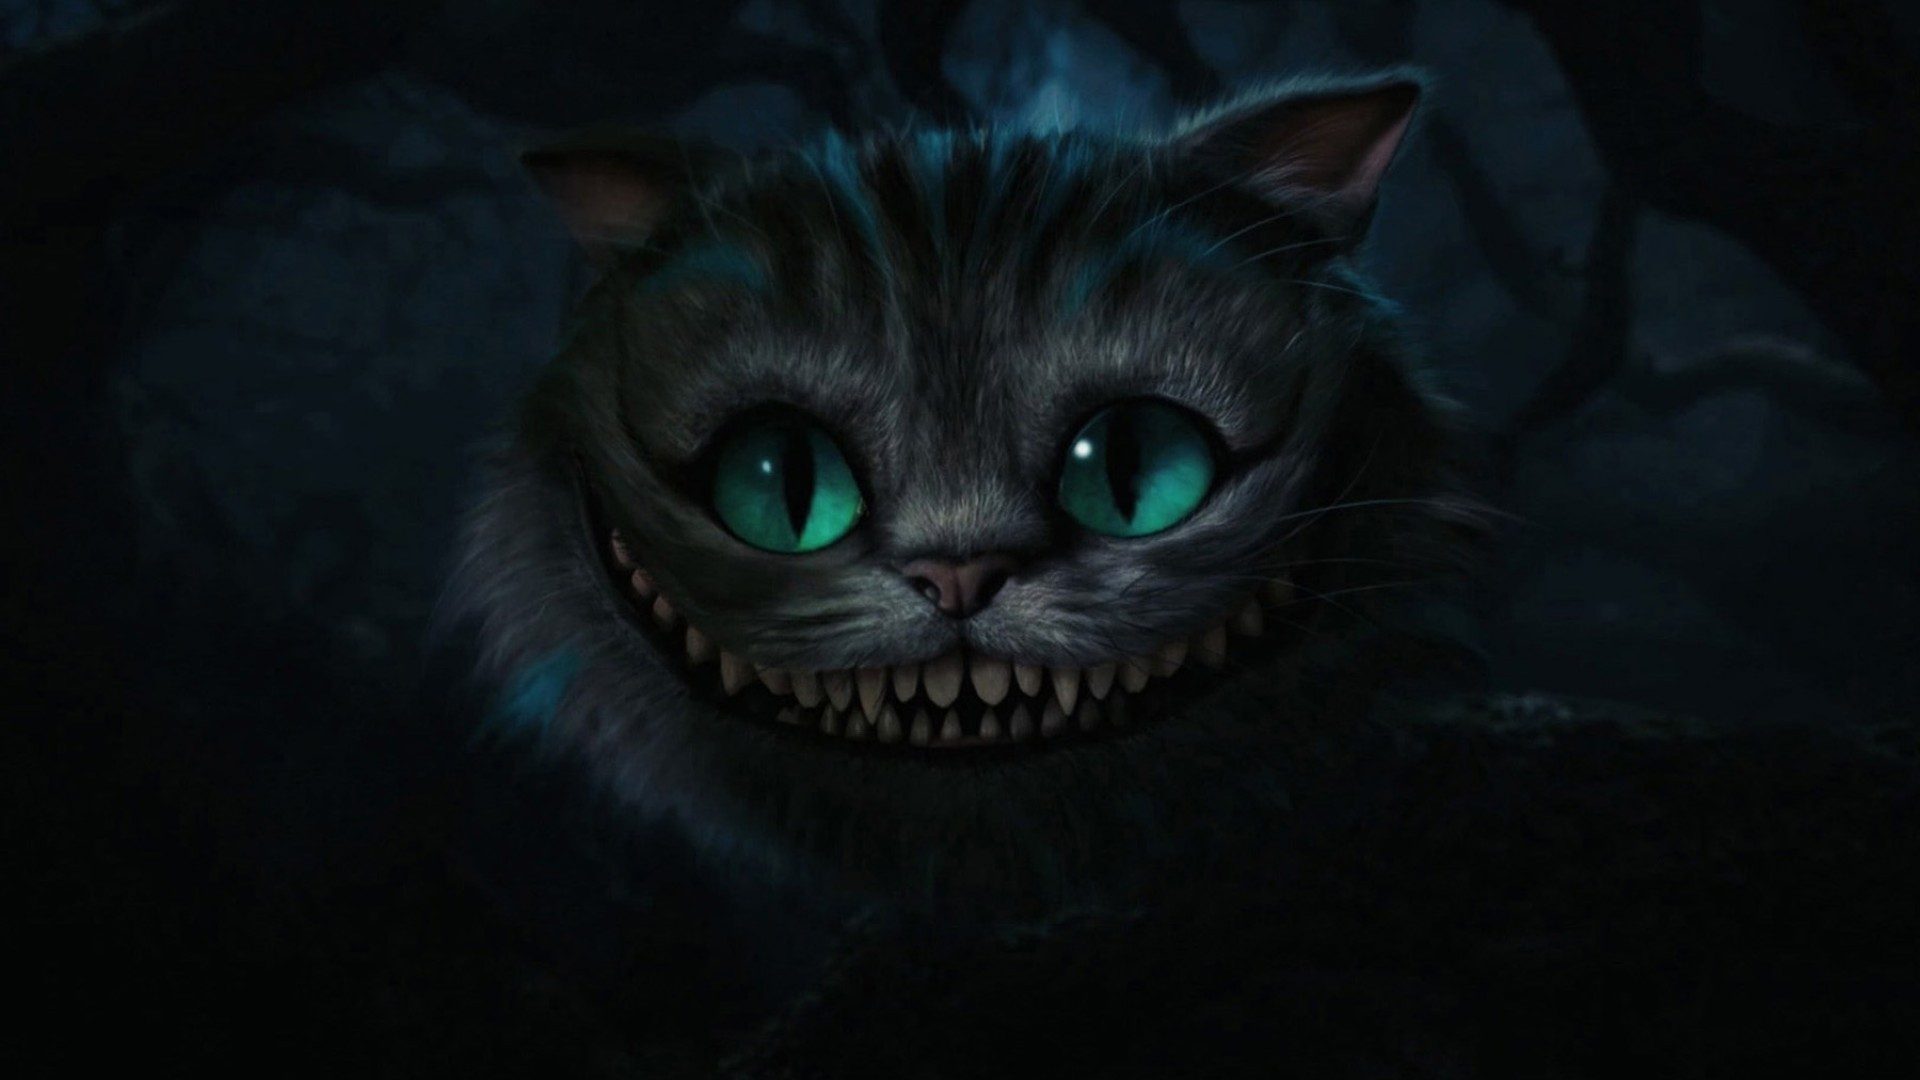 Alice in Wonderland Cheshire Cat Tim Burton artwo 1920x1080